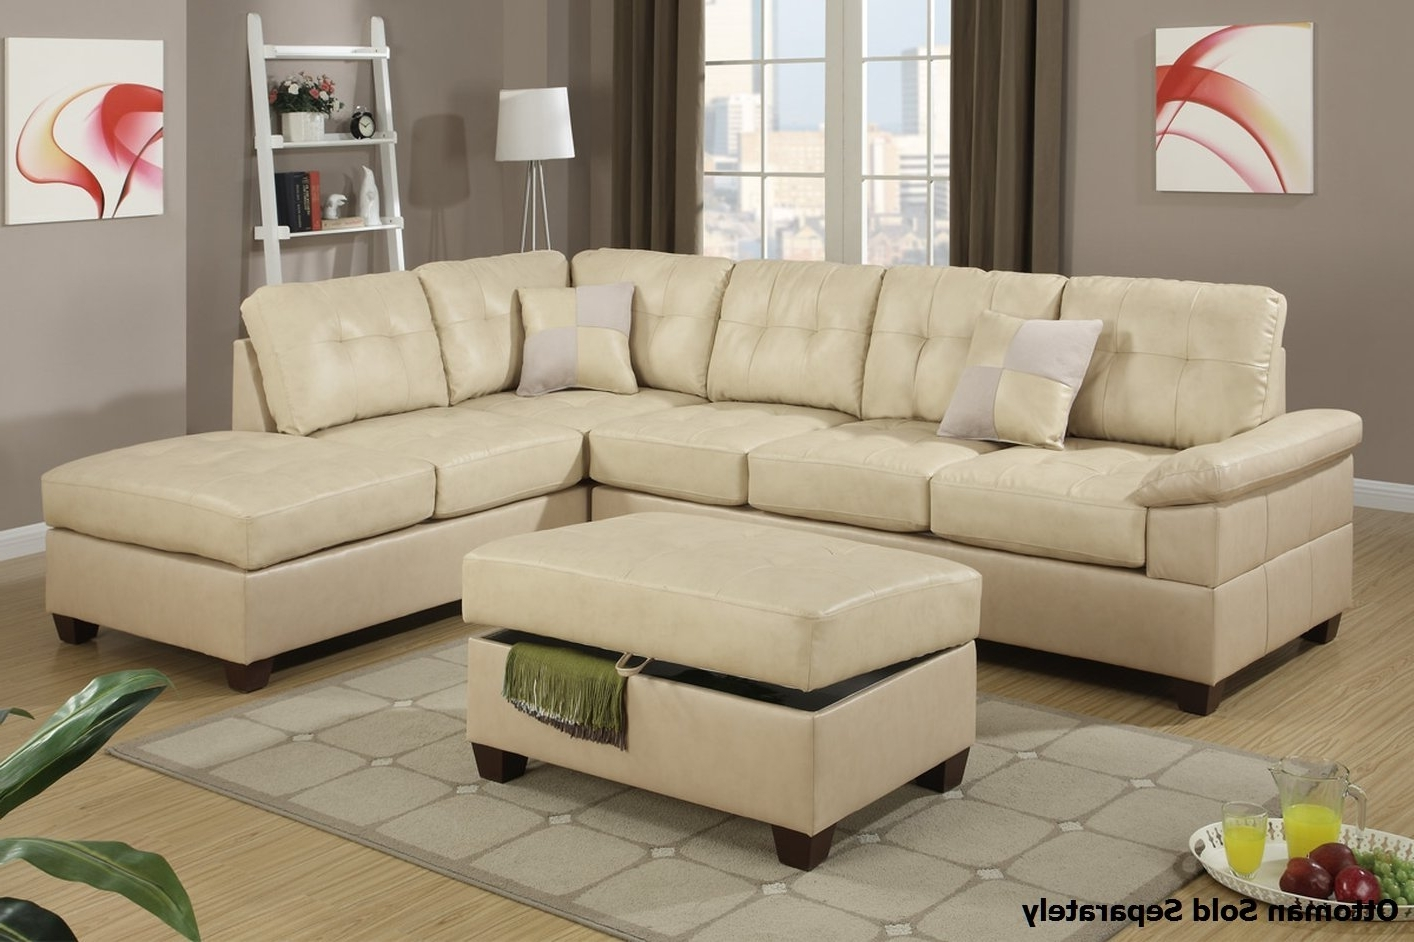 Sectional Sofa Design: Amazing Beige Sectional Sofas Beige Leather With Fashionable Cream Chaise Sofas (Gallery 13 of 15)